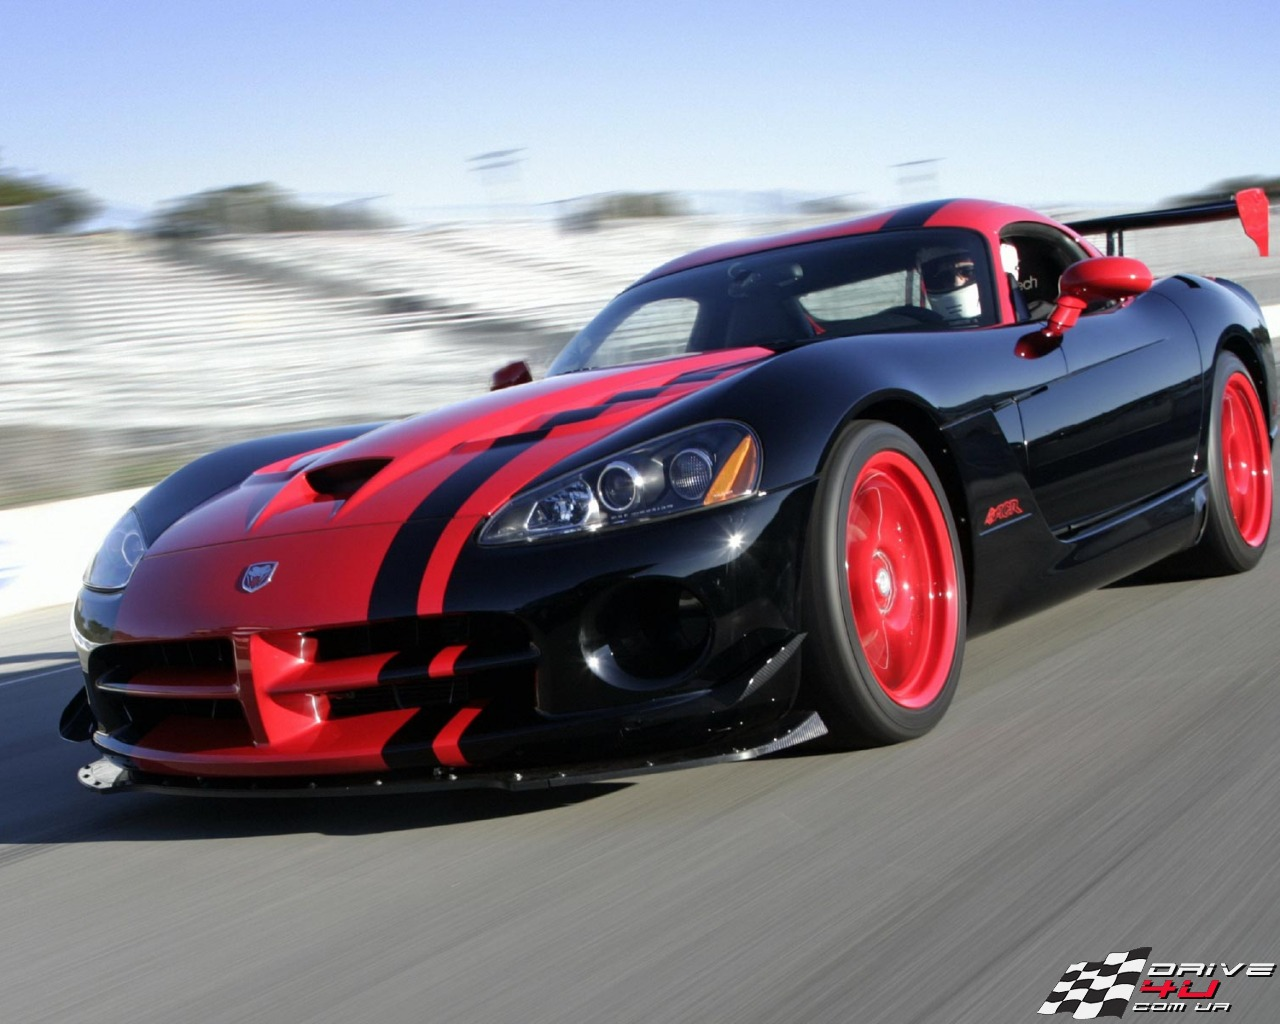 2018 Dodge Viper Srt10 Acr on dodge viper srt 10